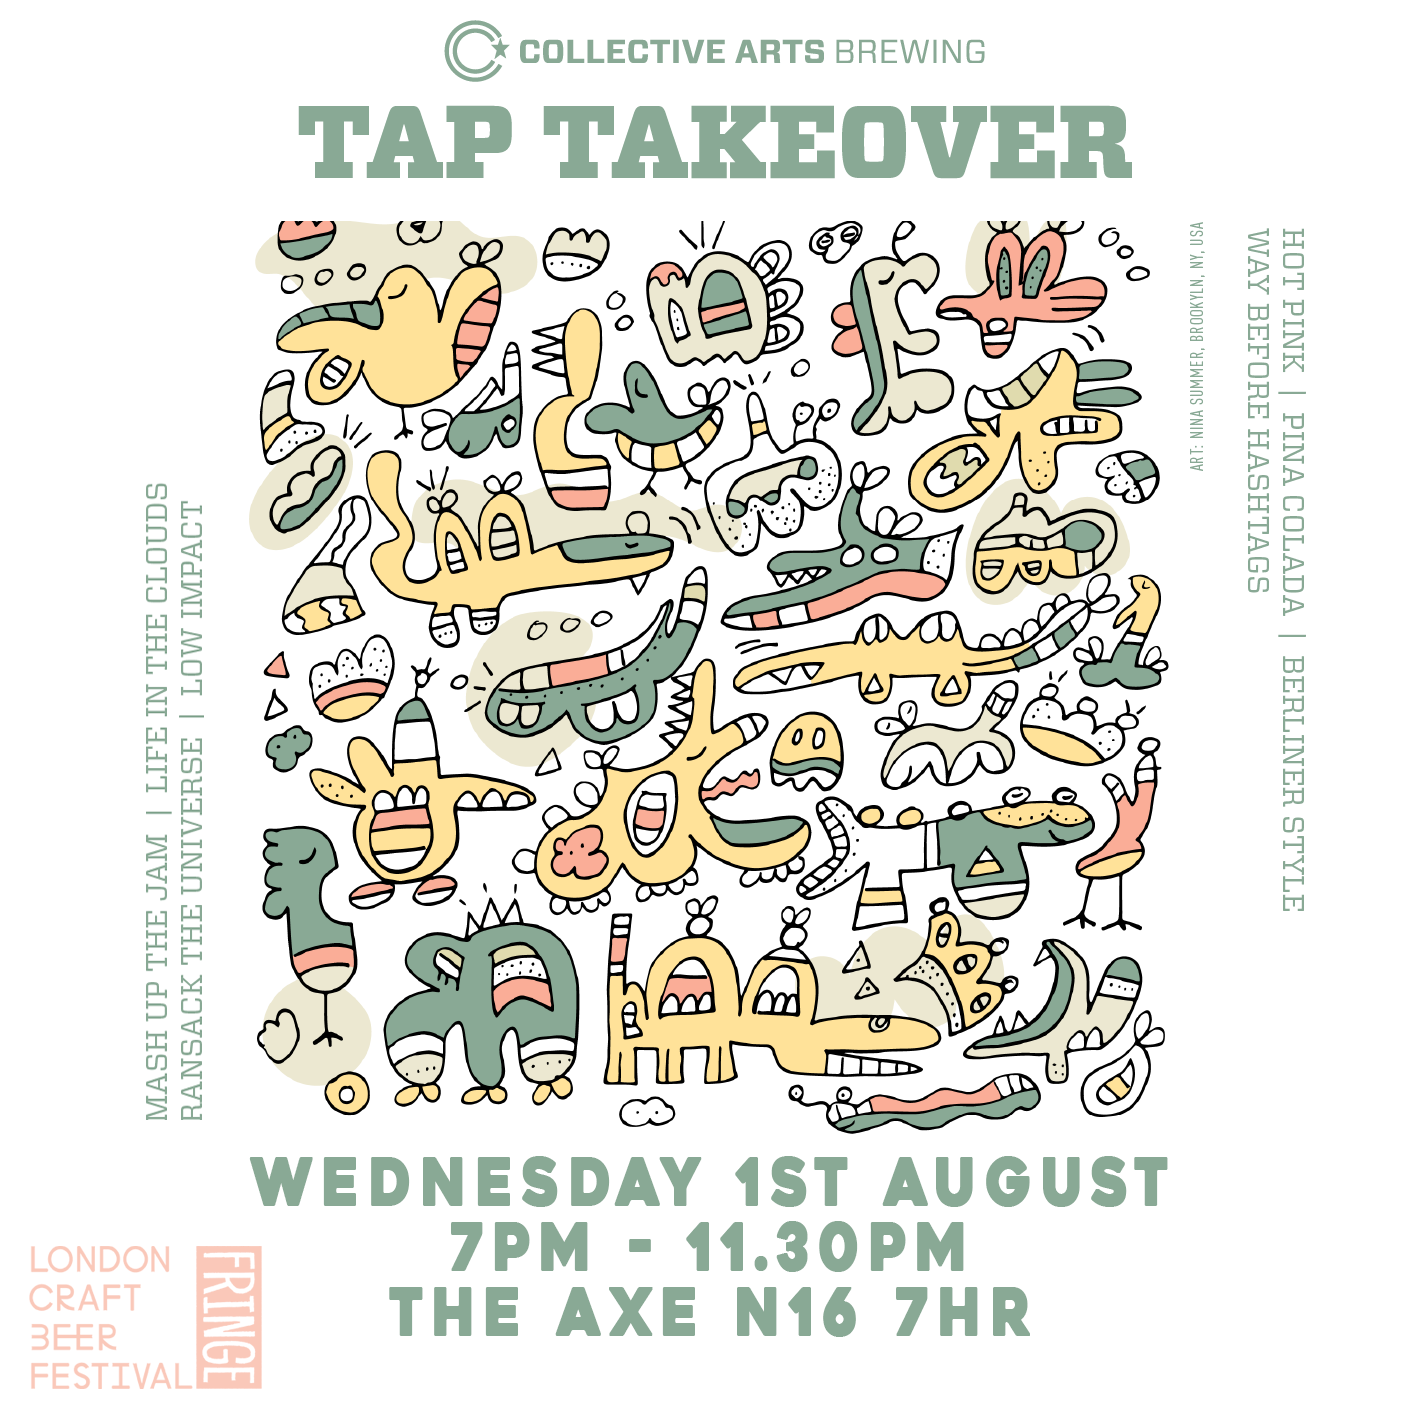 TheAxeTapTakeover_ig_sQUARE1.png